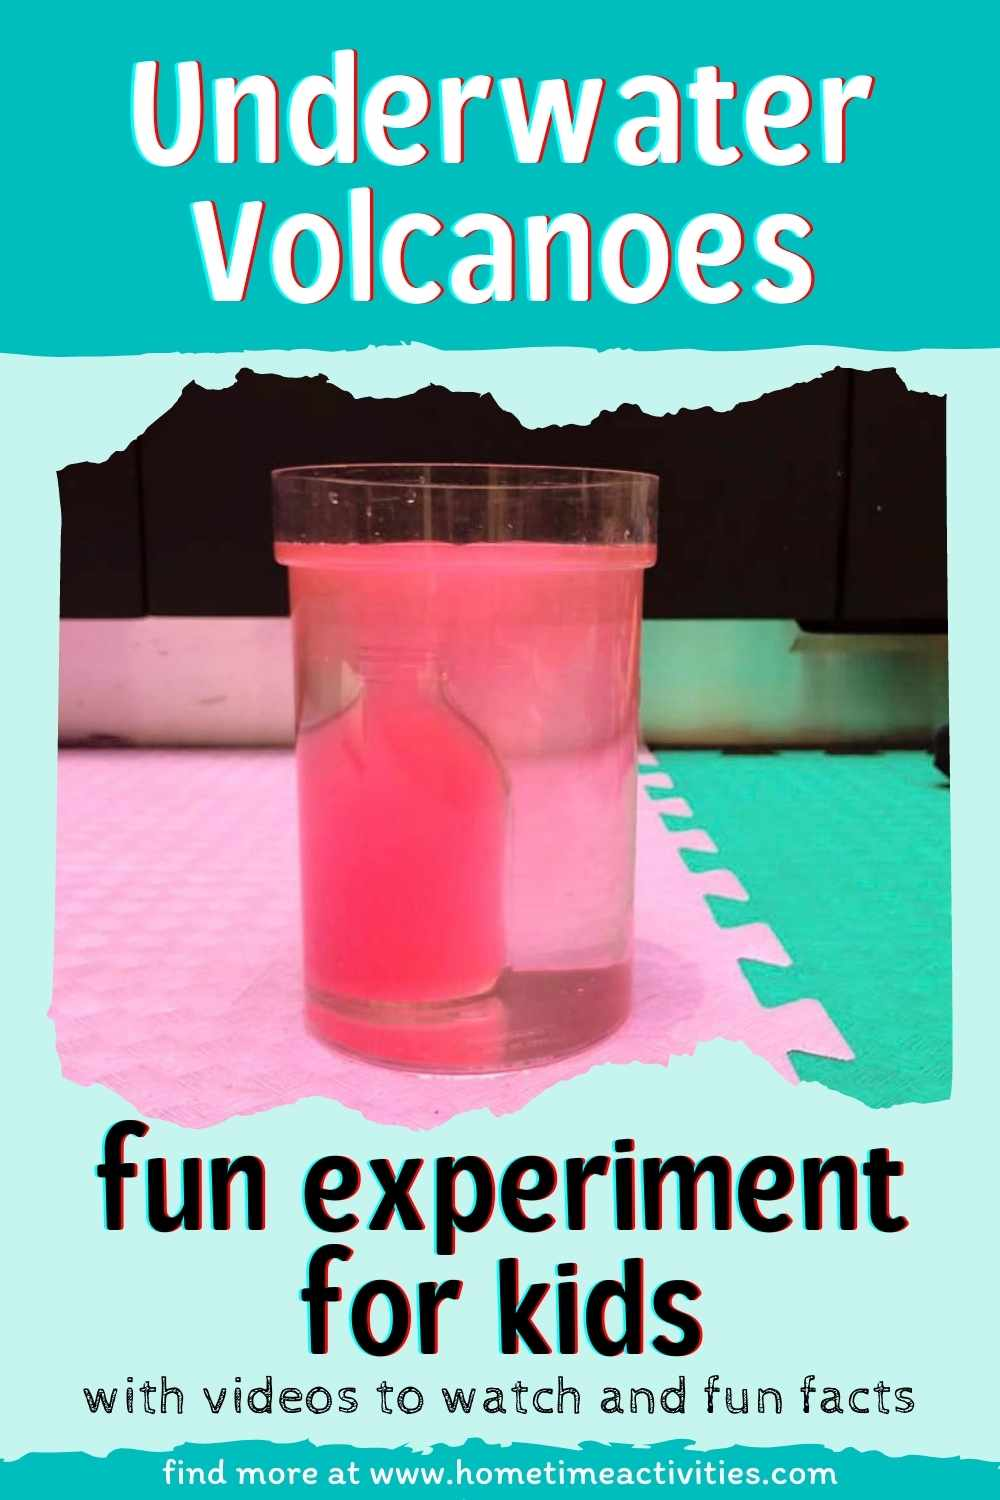 Underwater Volcano Experiment for Kids - picture of the fun science experiment